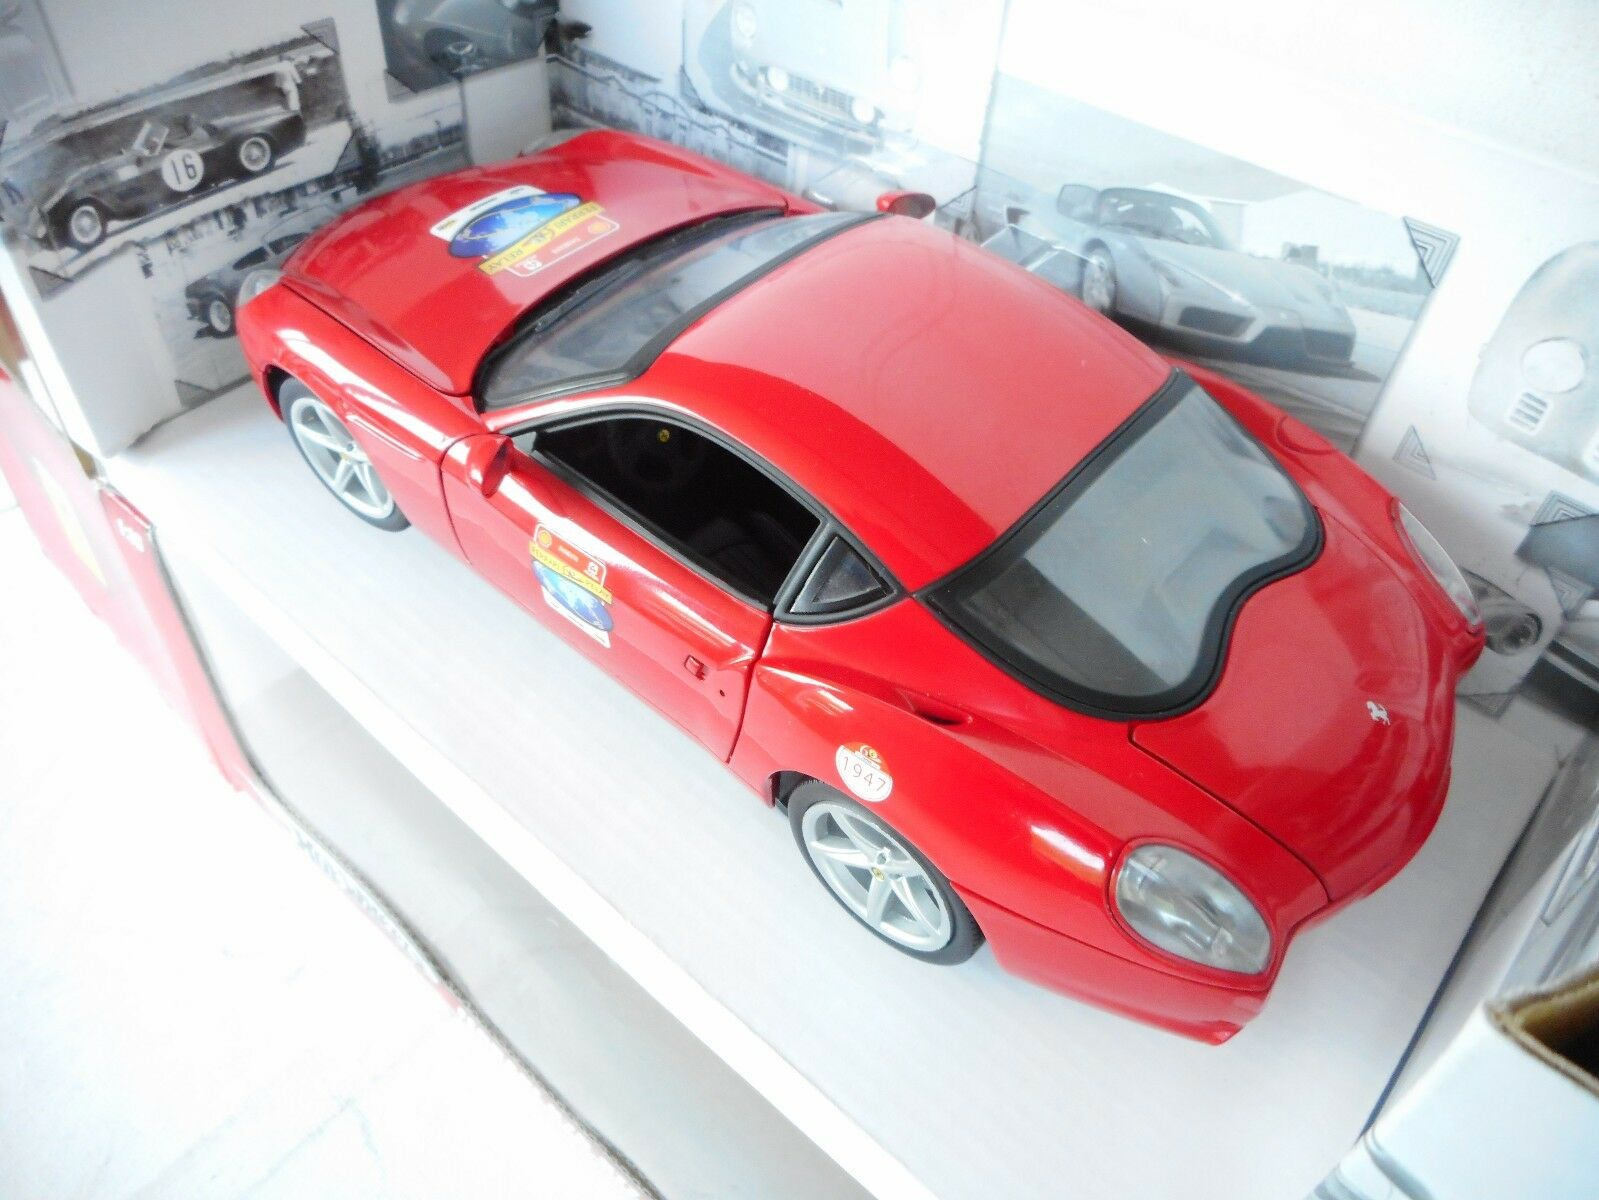 Ferrari 575 GTZ Zagato 2006 red, red, red, Modellauto 1 18   Mattel - Hot Wheels M BOX 5c2d2f